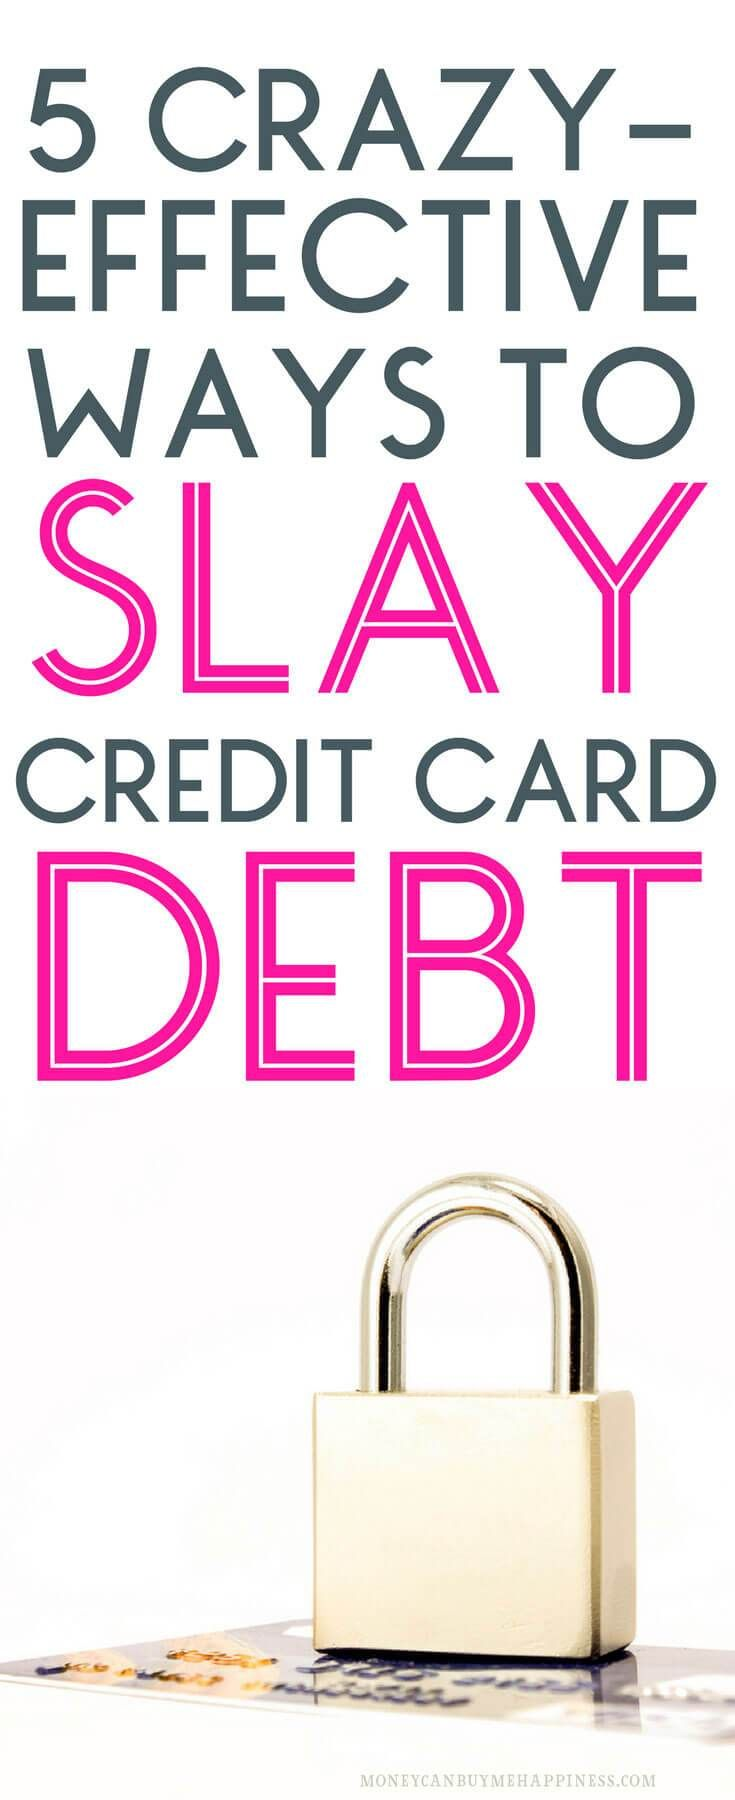 Want to be free of credit card debt? You can be! With these tips for getting out of debt, you'll be on your way to financial freedom in no time at all. #cleardebt #debtfree